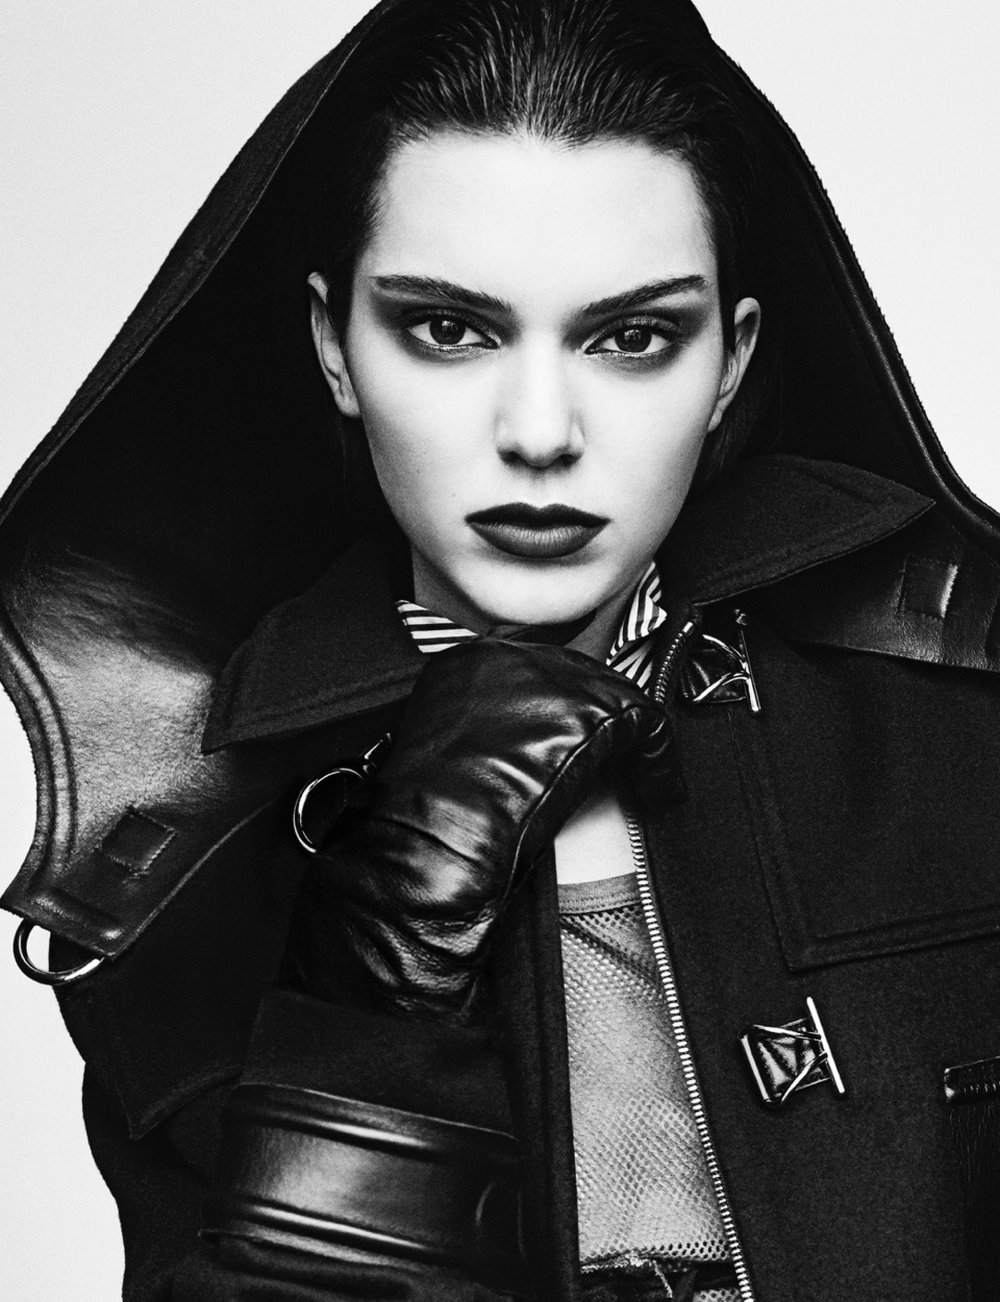 Vogue-Germany-October-2016-Kendall-Jenner-by-Luigi-and-Iango-04.jpg